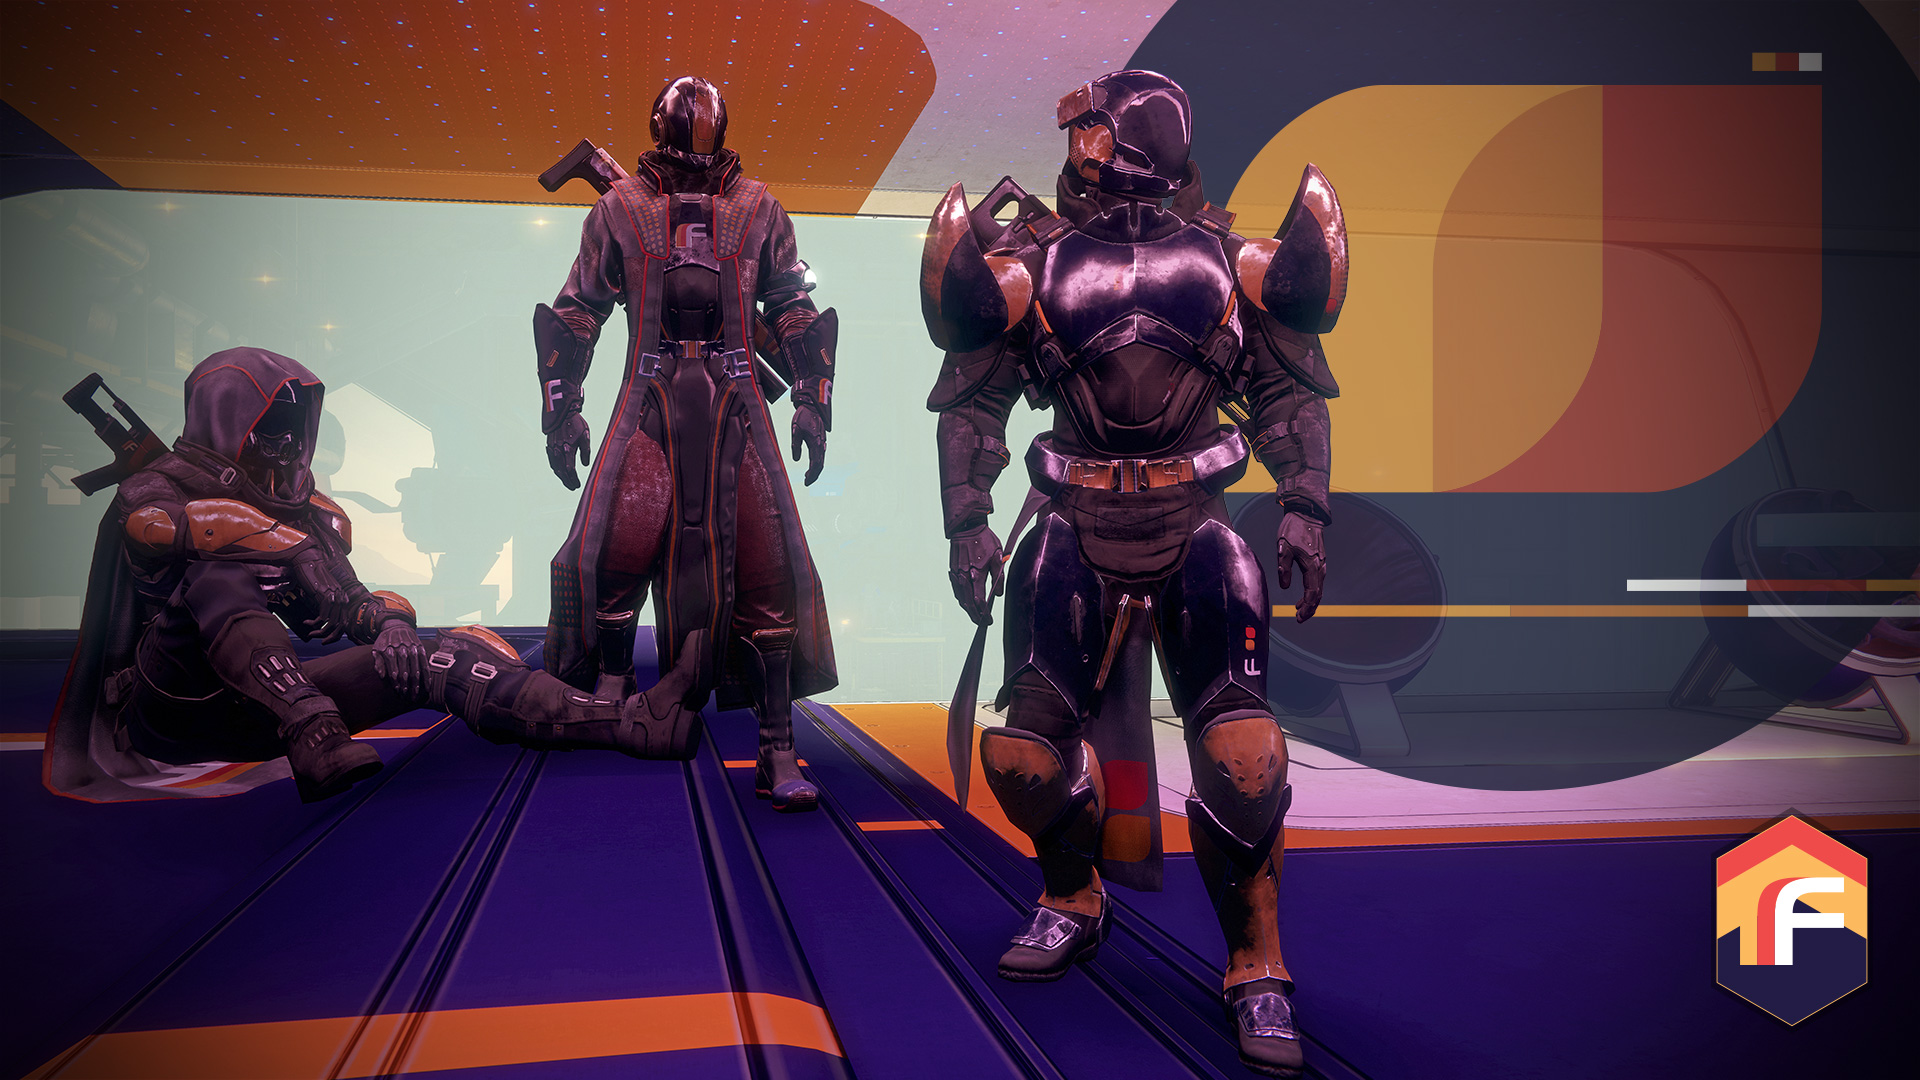 Future War Cult has a few good items on offer, plus, they have a sweet new hangout location.